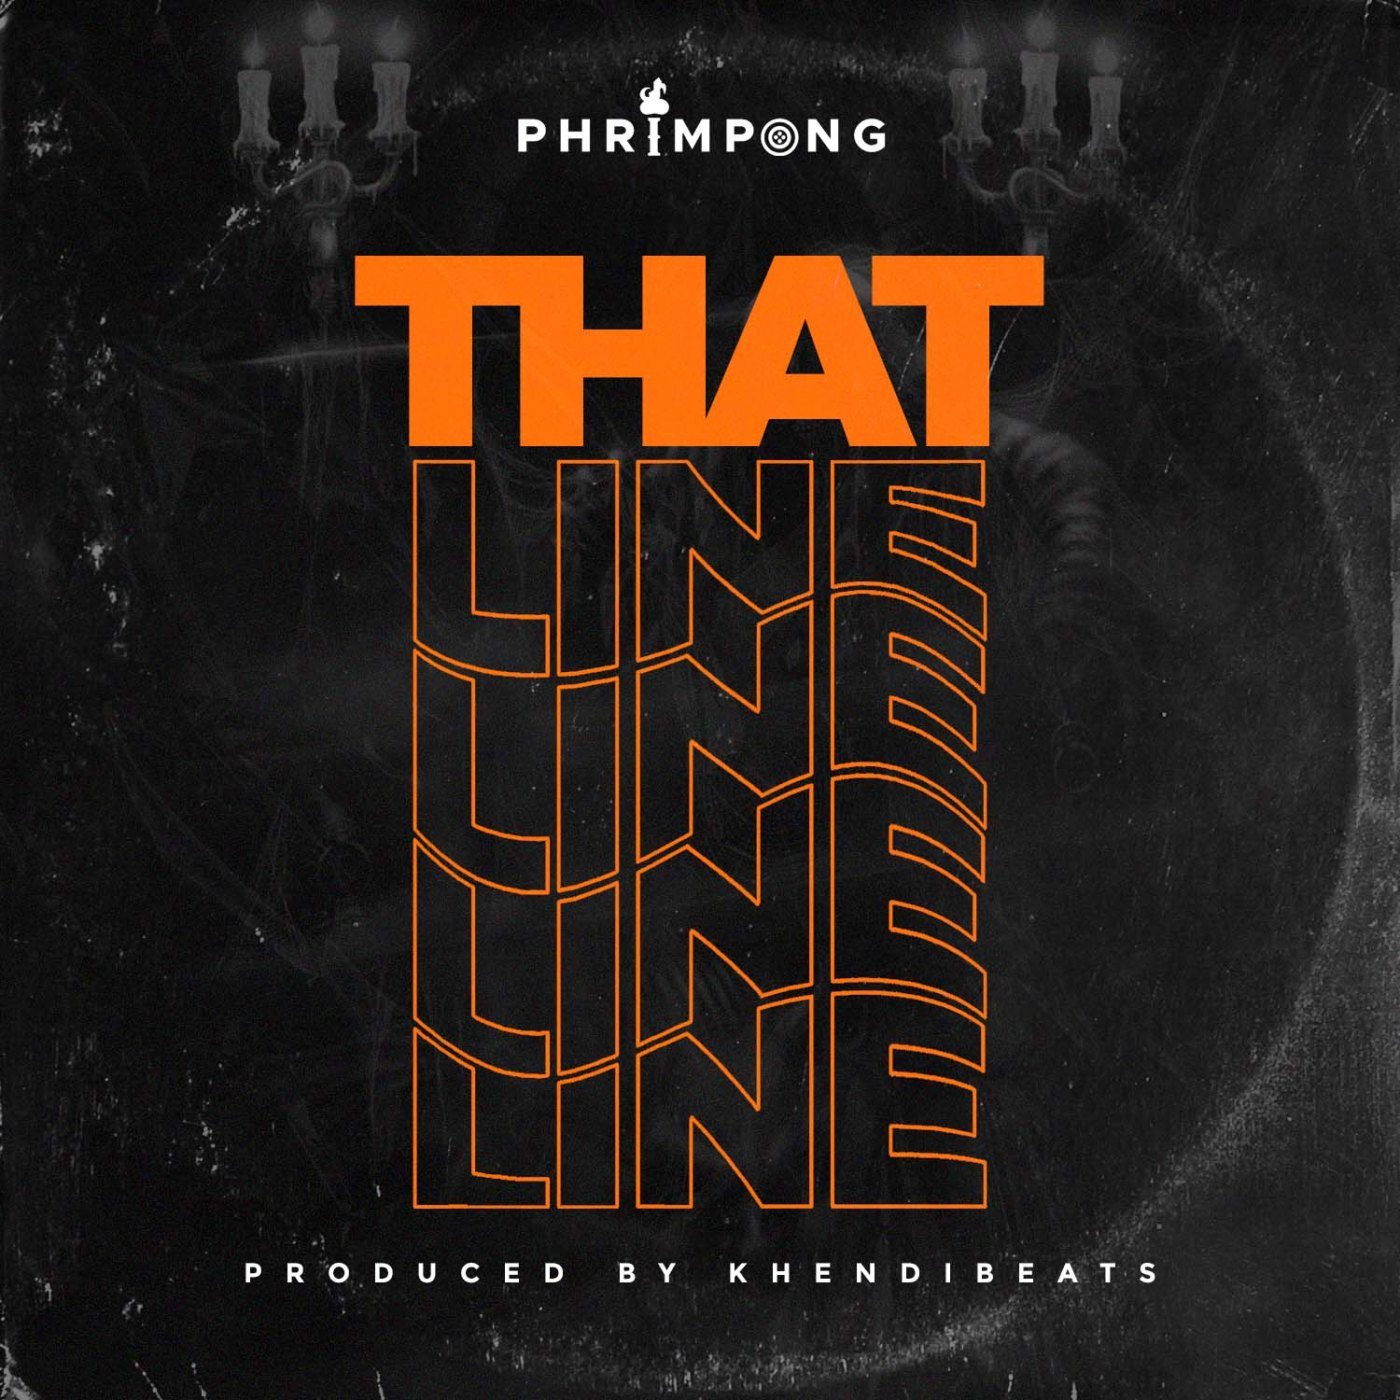 Phrimpong - That Line